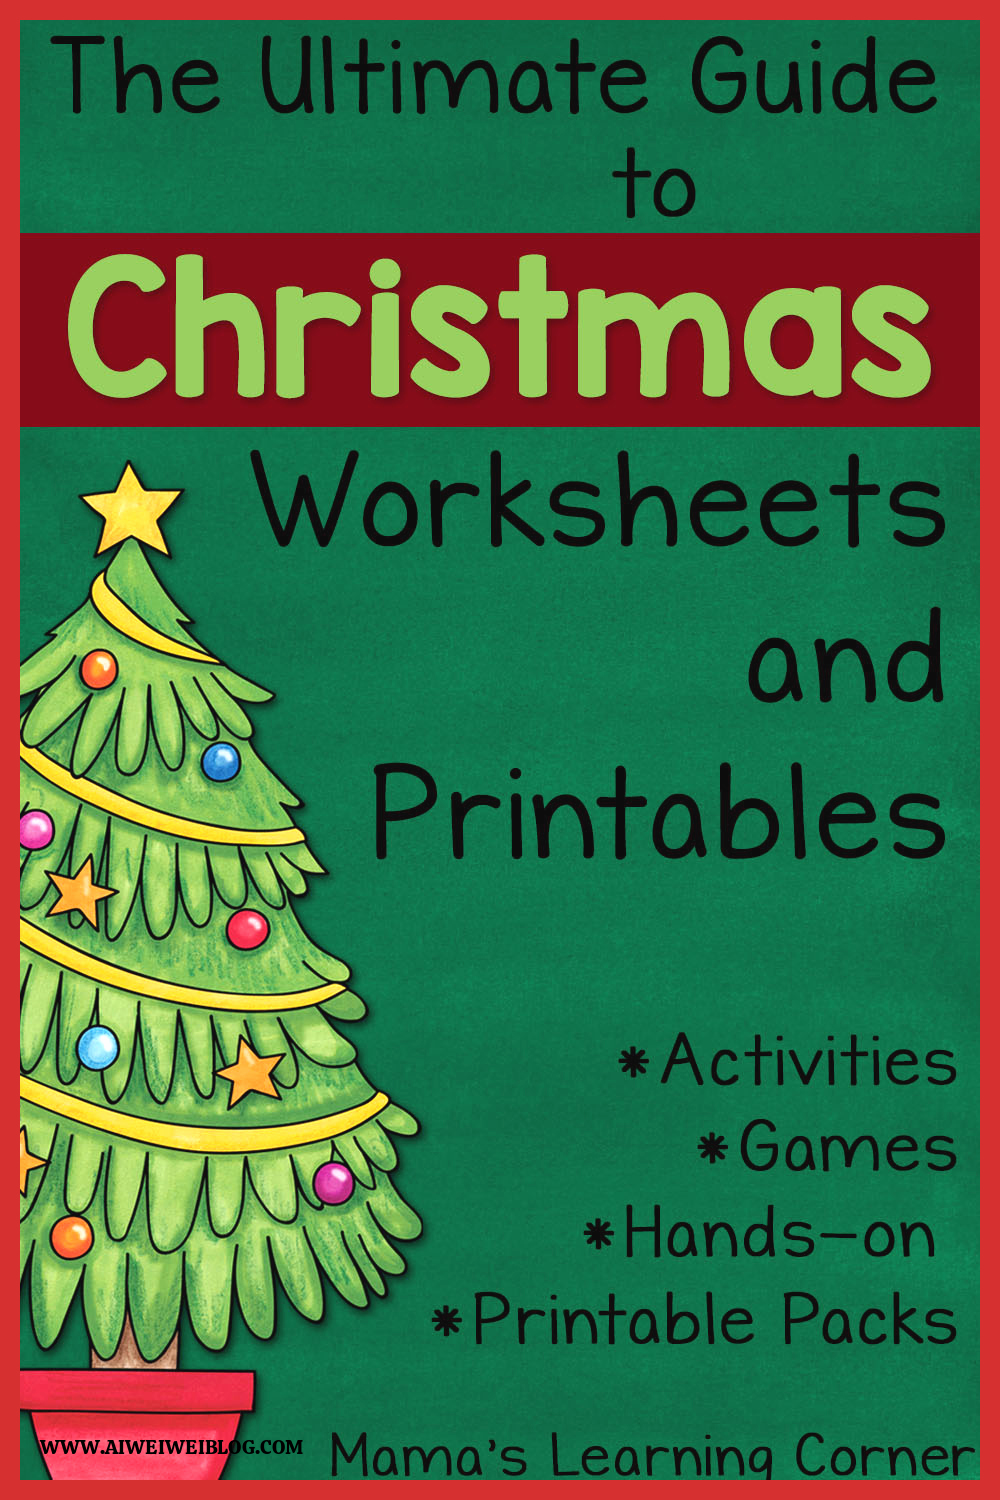 Christmas Worksheets Ideas for Kids Beautiful the Ultimate Guide to Christmas Worksheets and Printables